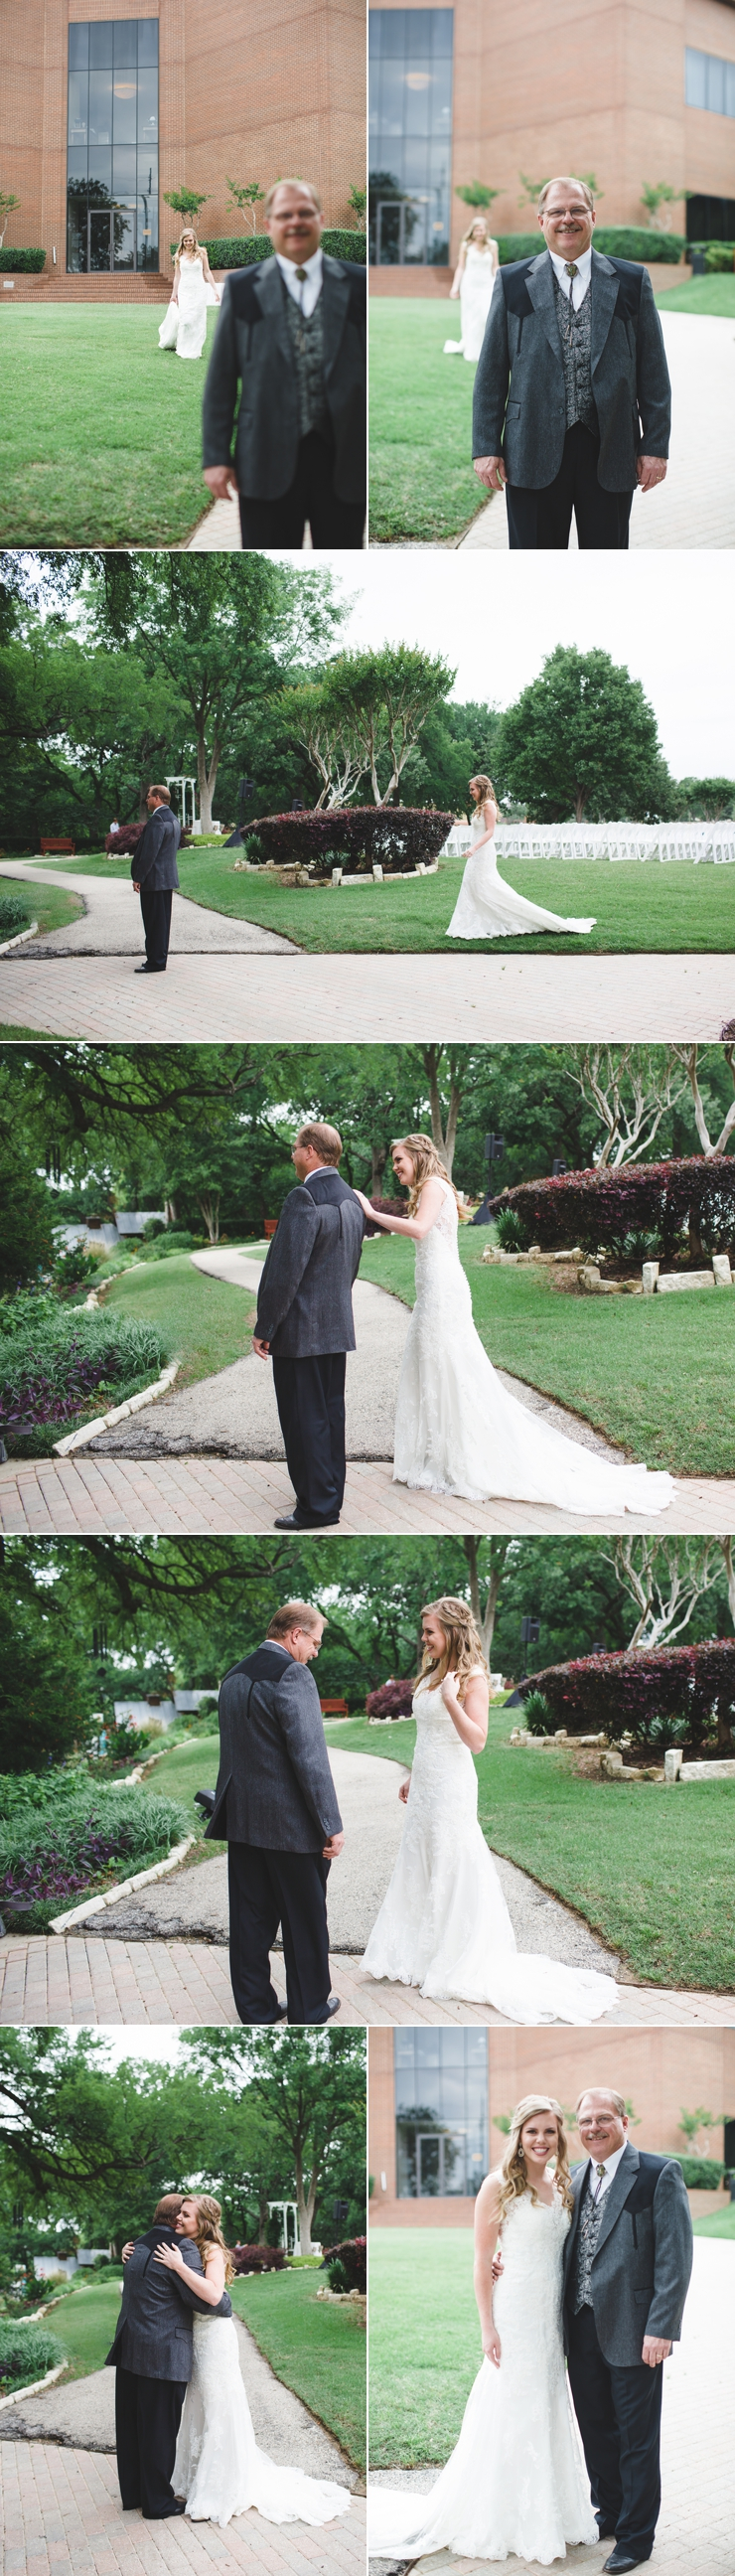 White Wedding - Blog Collages 4.jpg